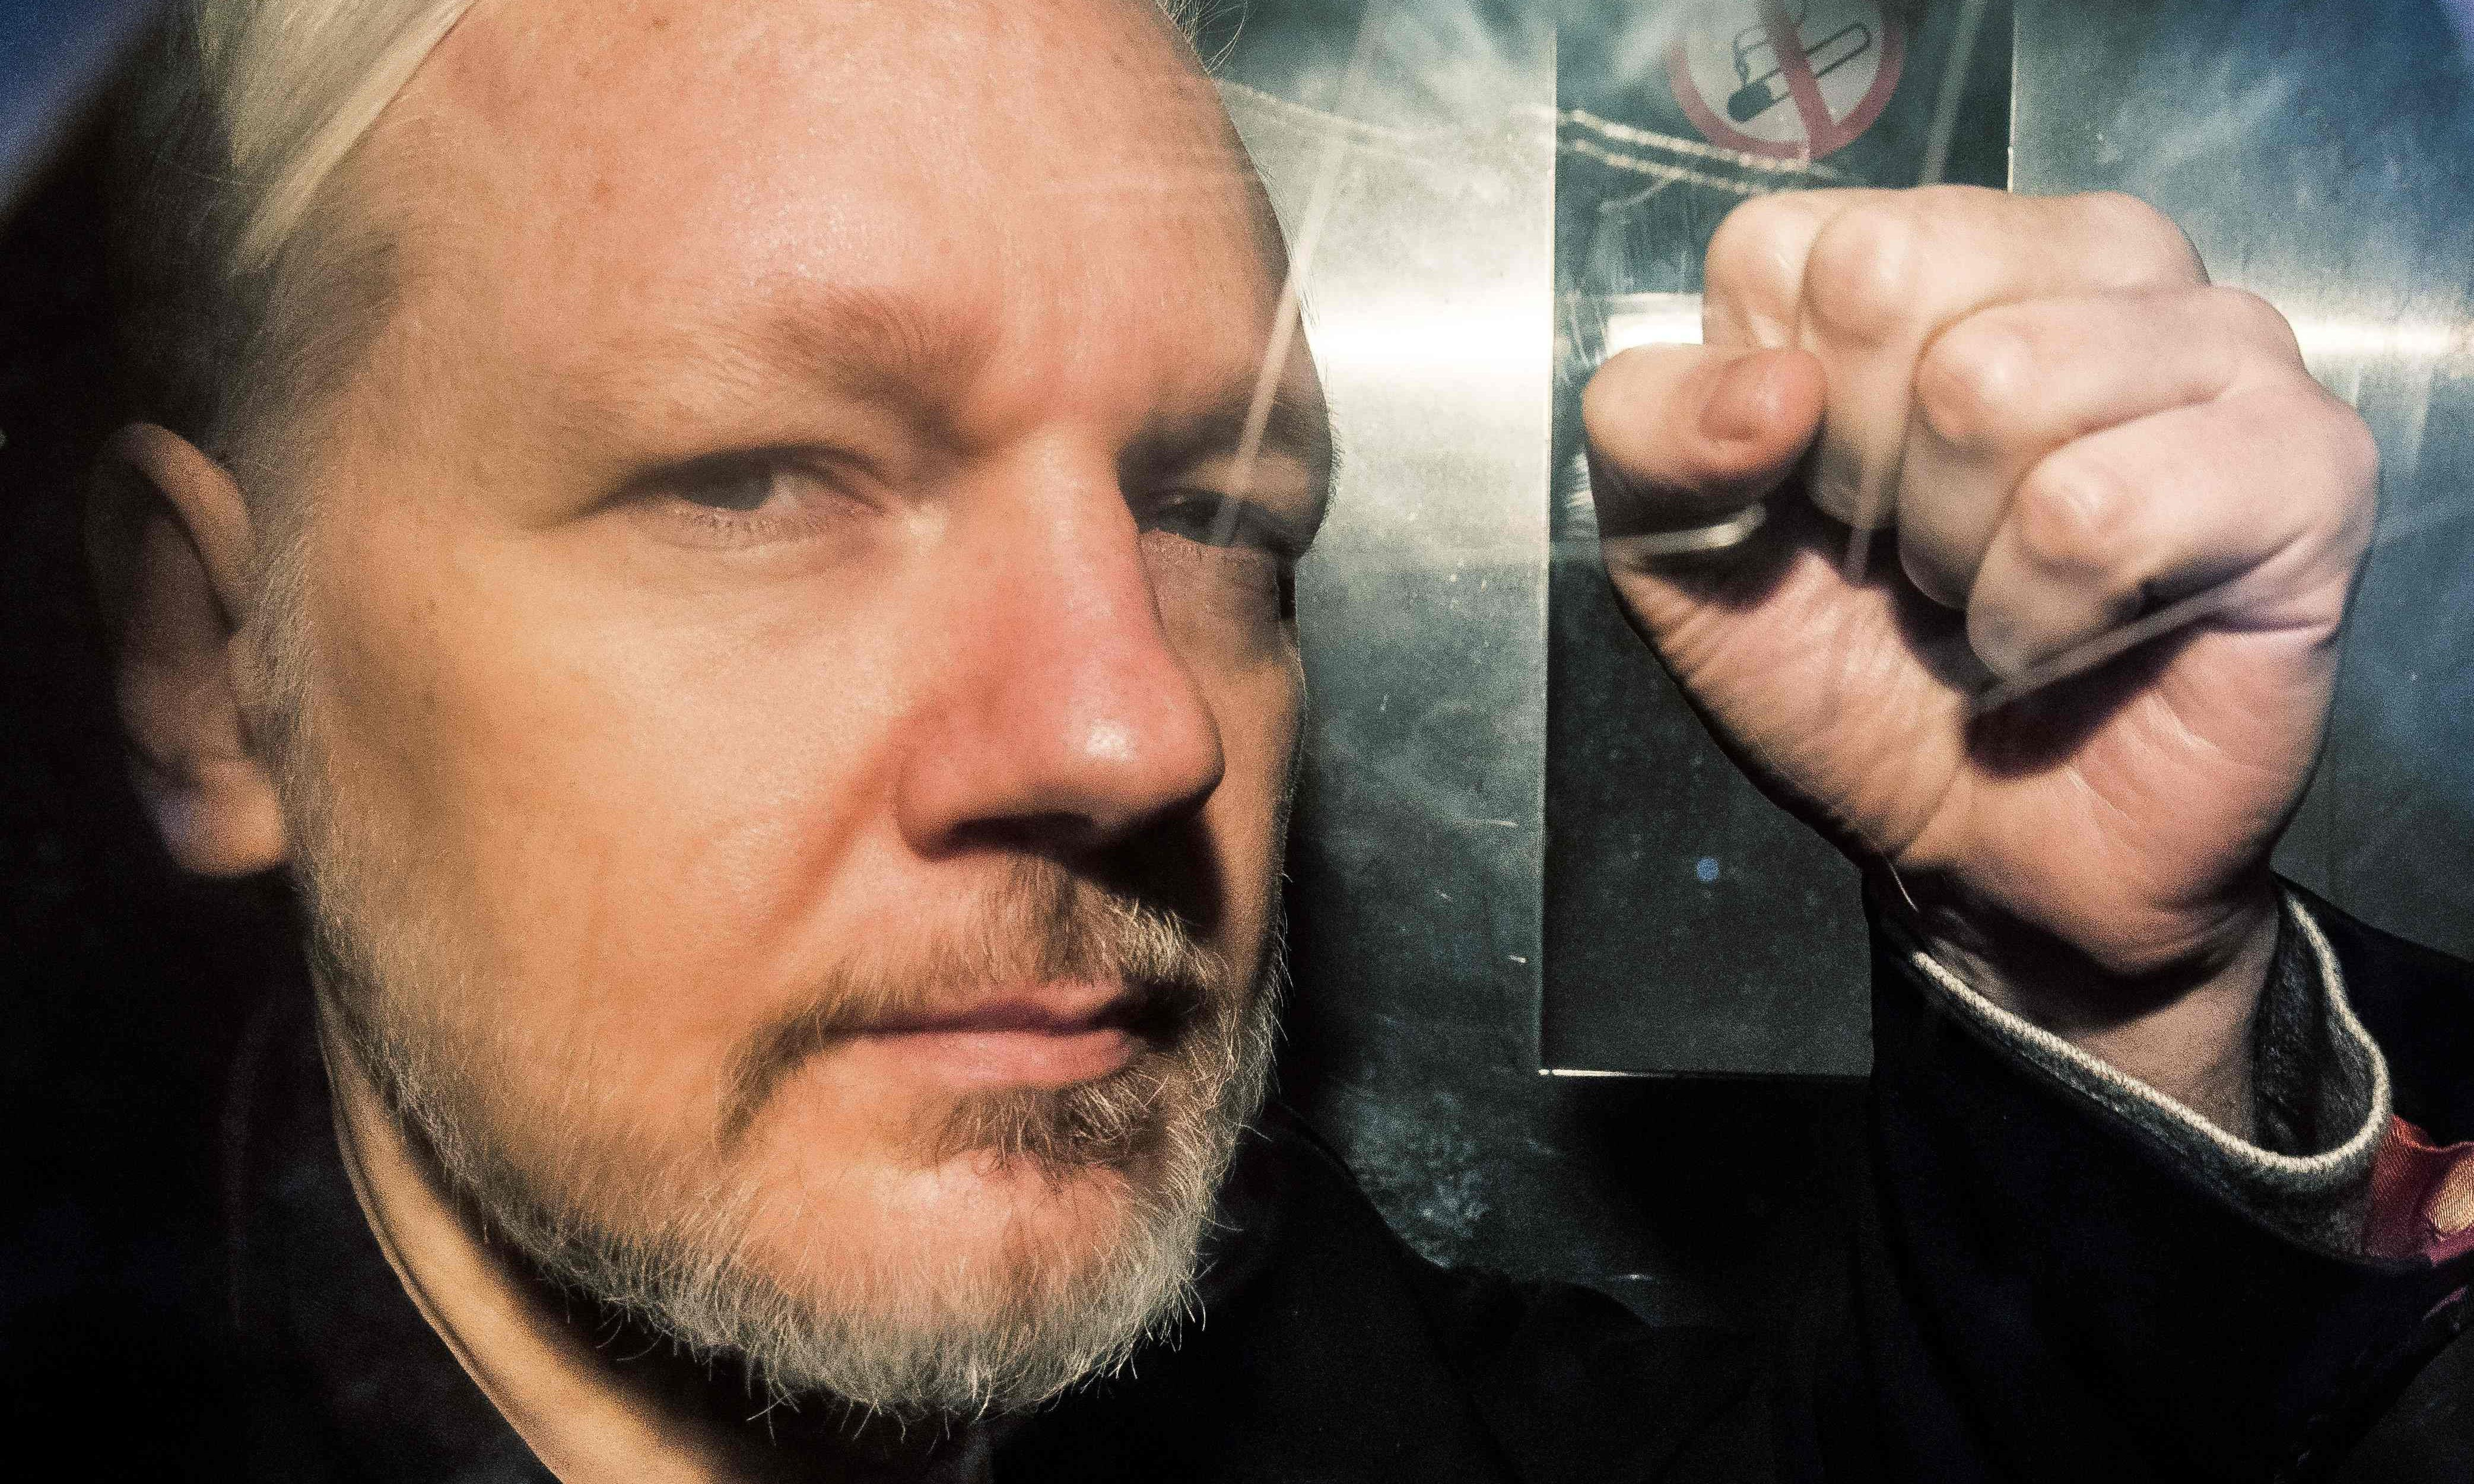 Julian Assange to face US extradition hearing in UK next year